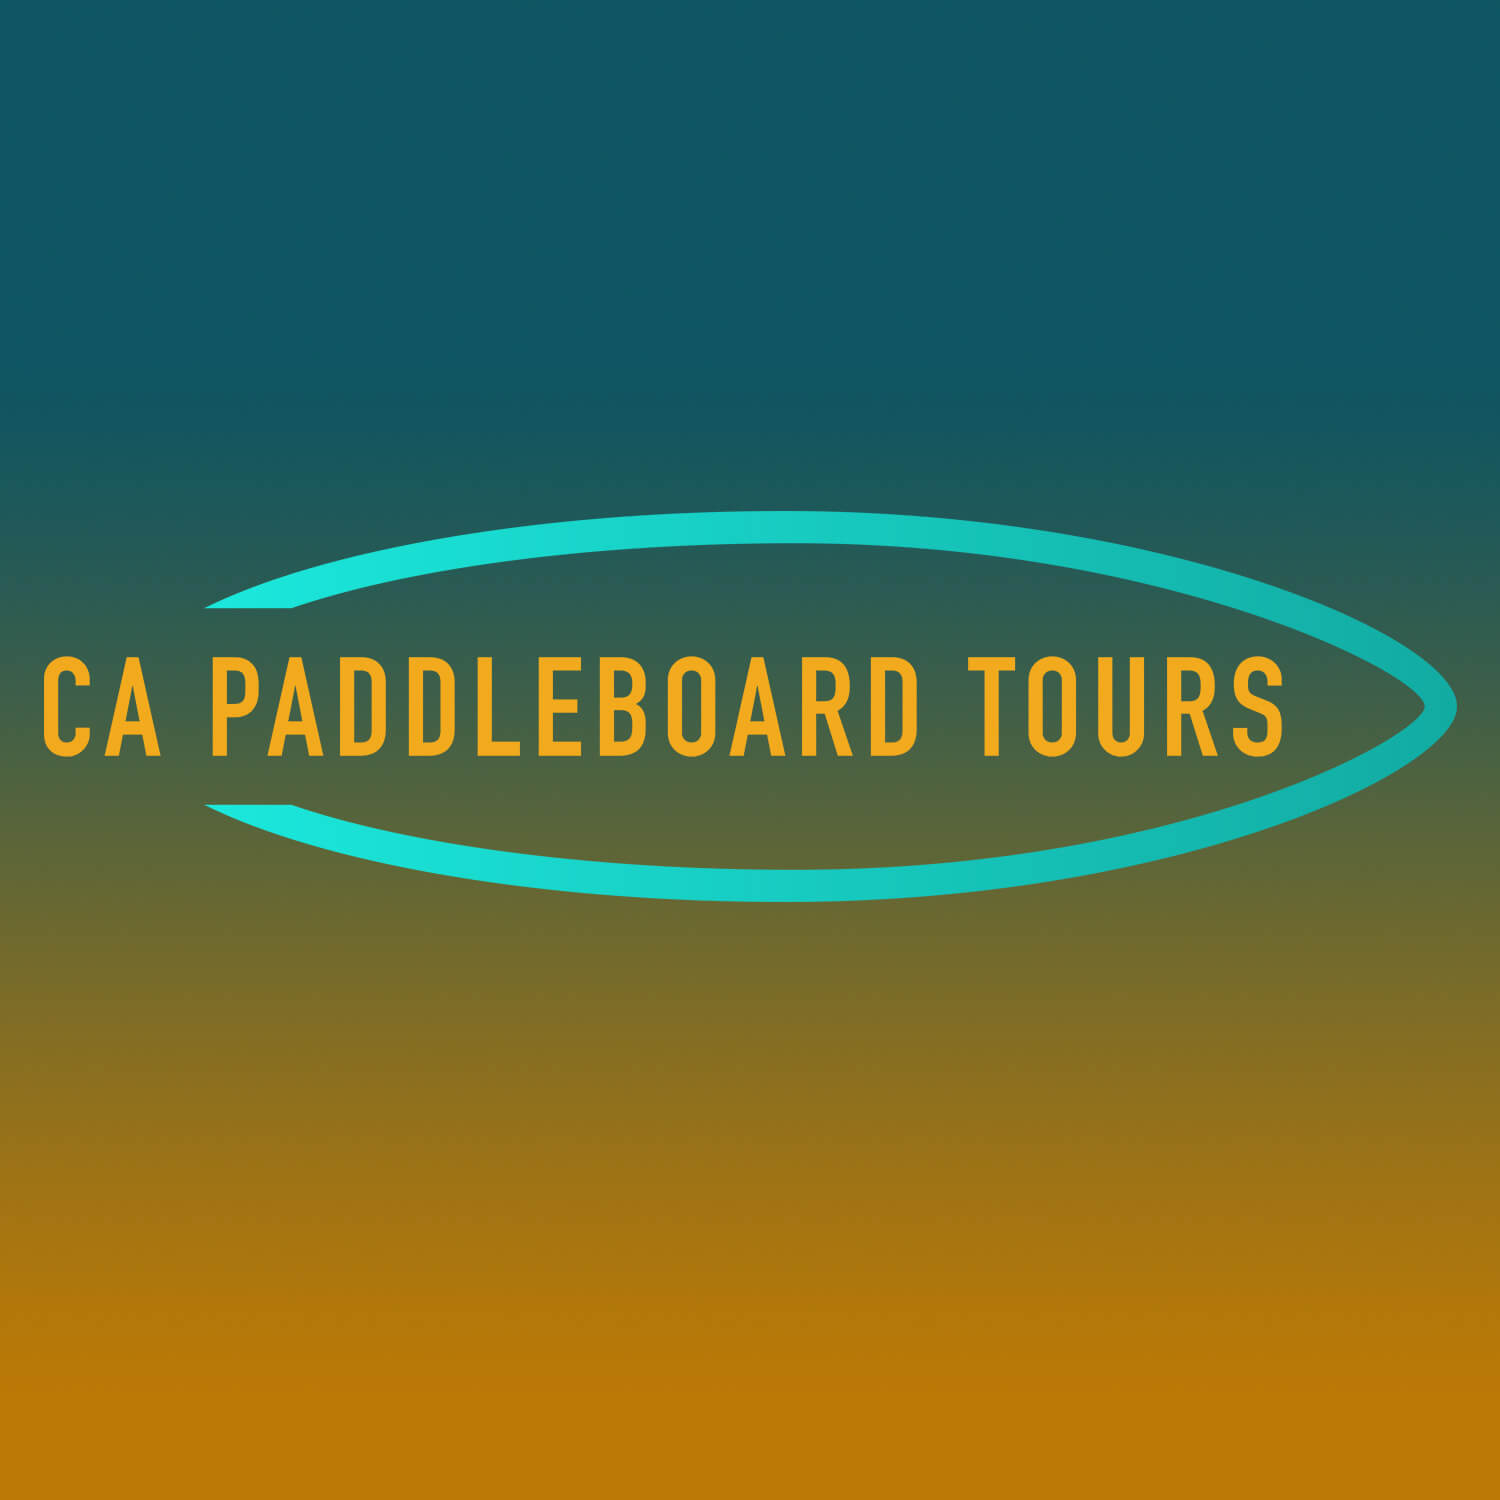 CA Paddle Board Tours